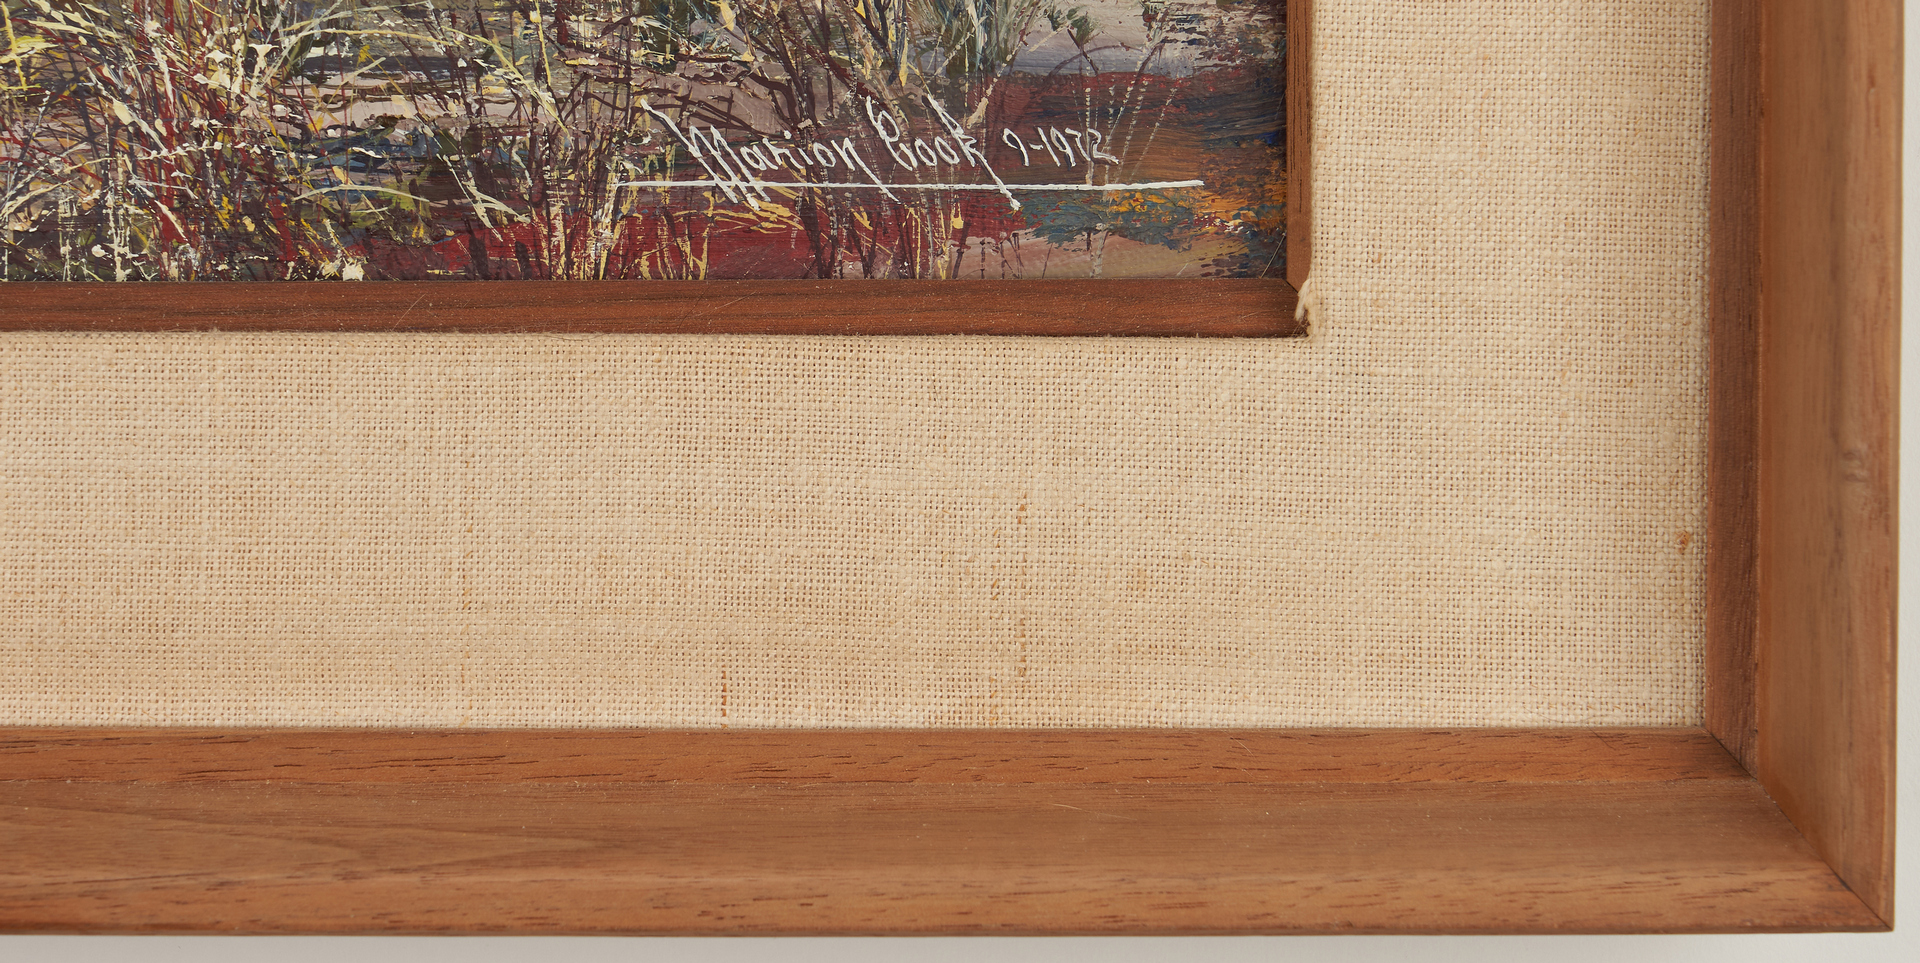 Lot 274: 2 Marion Cook Paintings, Barn and Daisies